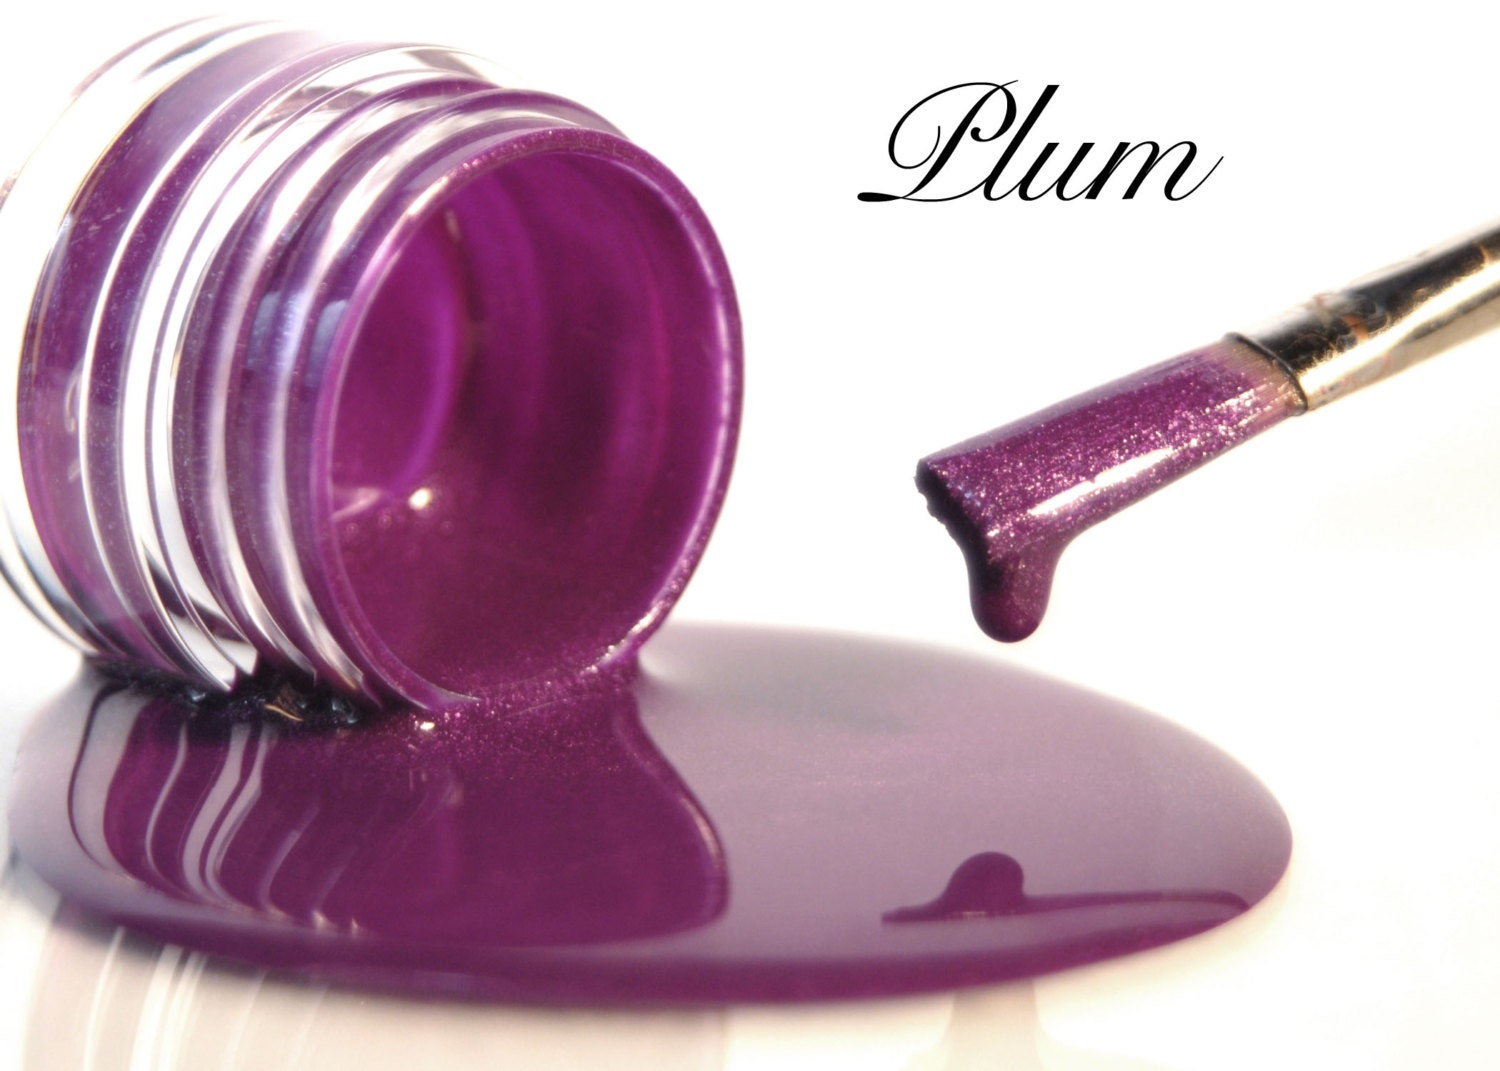 Creative Inspirations Paint - Plum - MaeSunshineDesigns